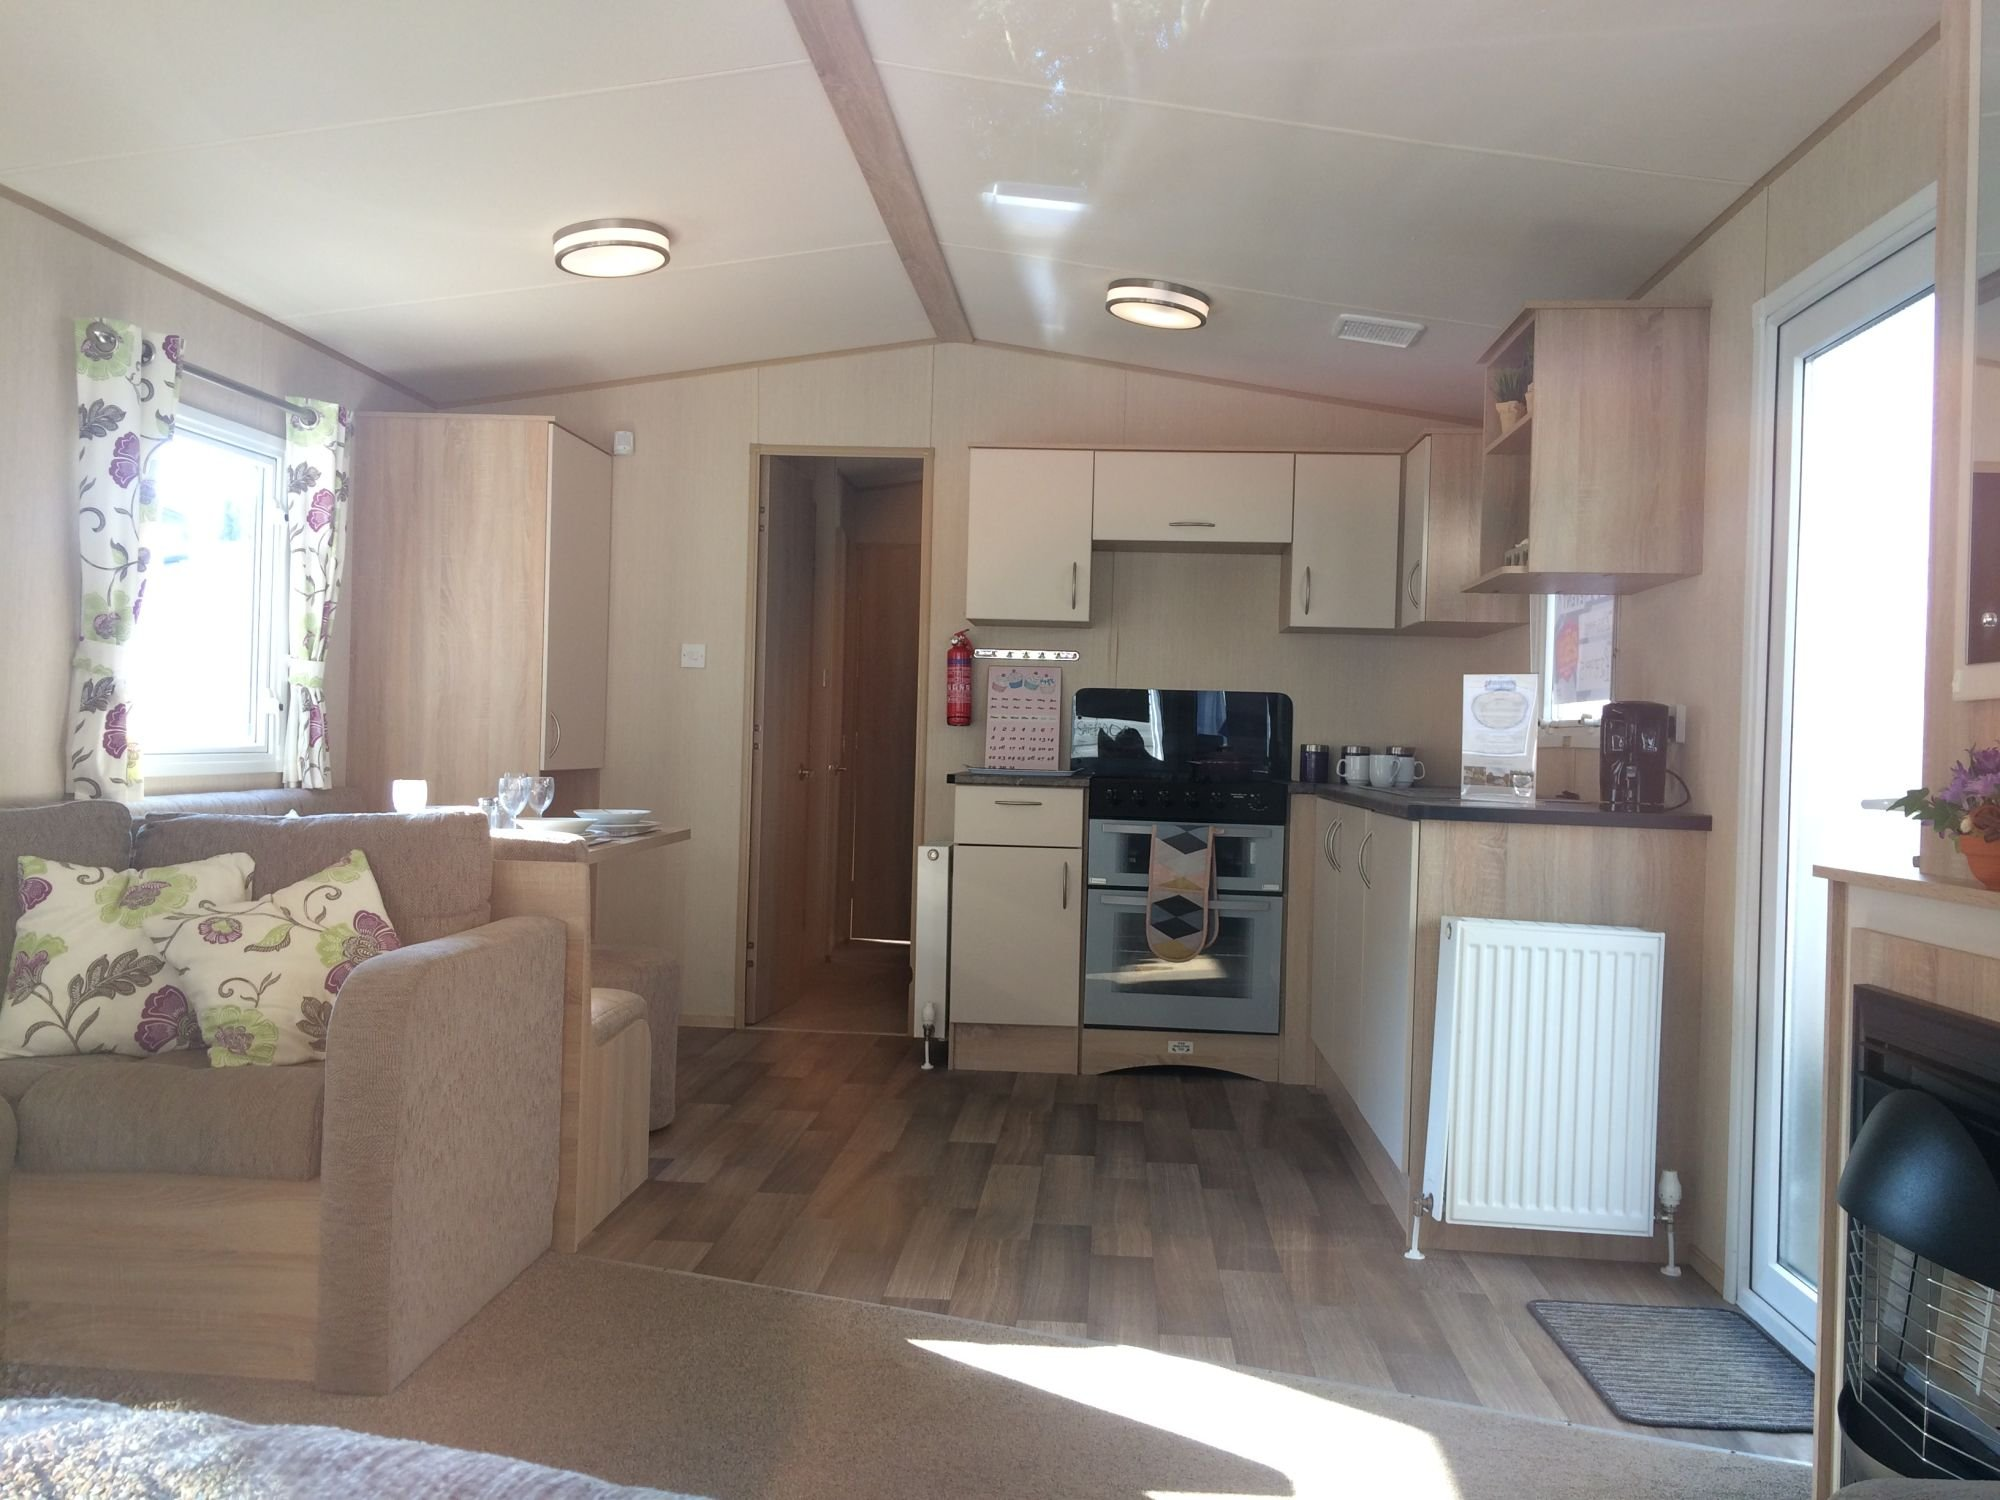 Kitchen area of our caravan for hire